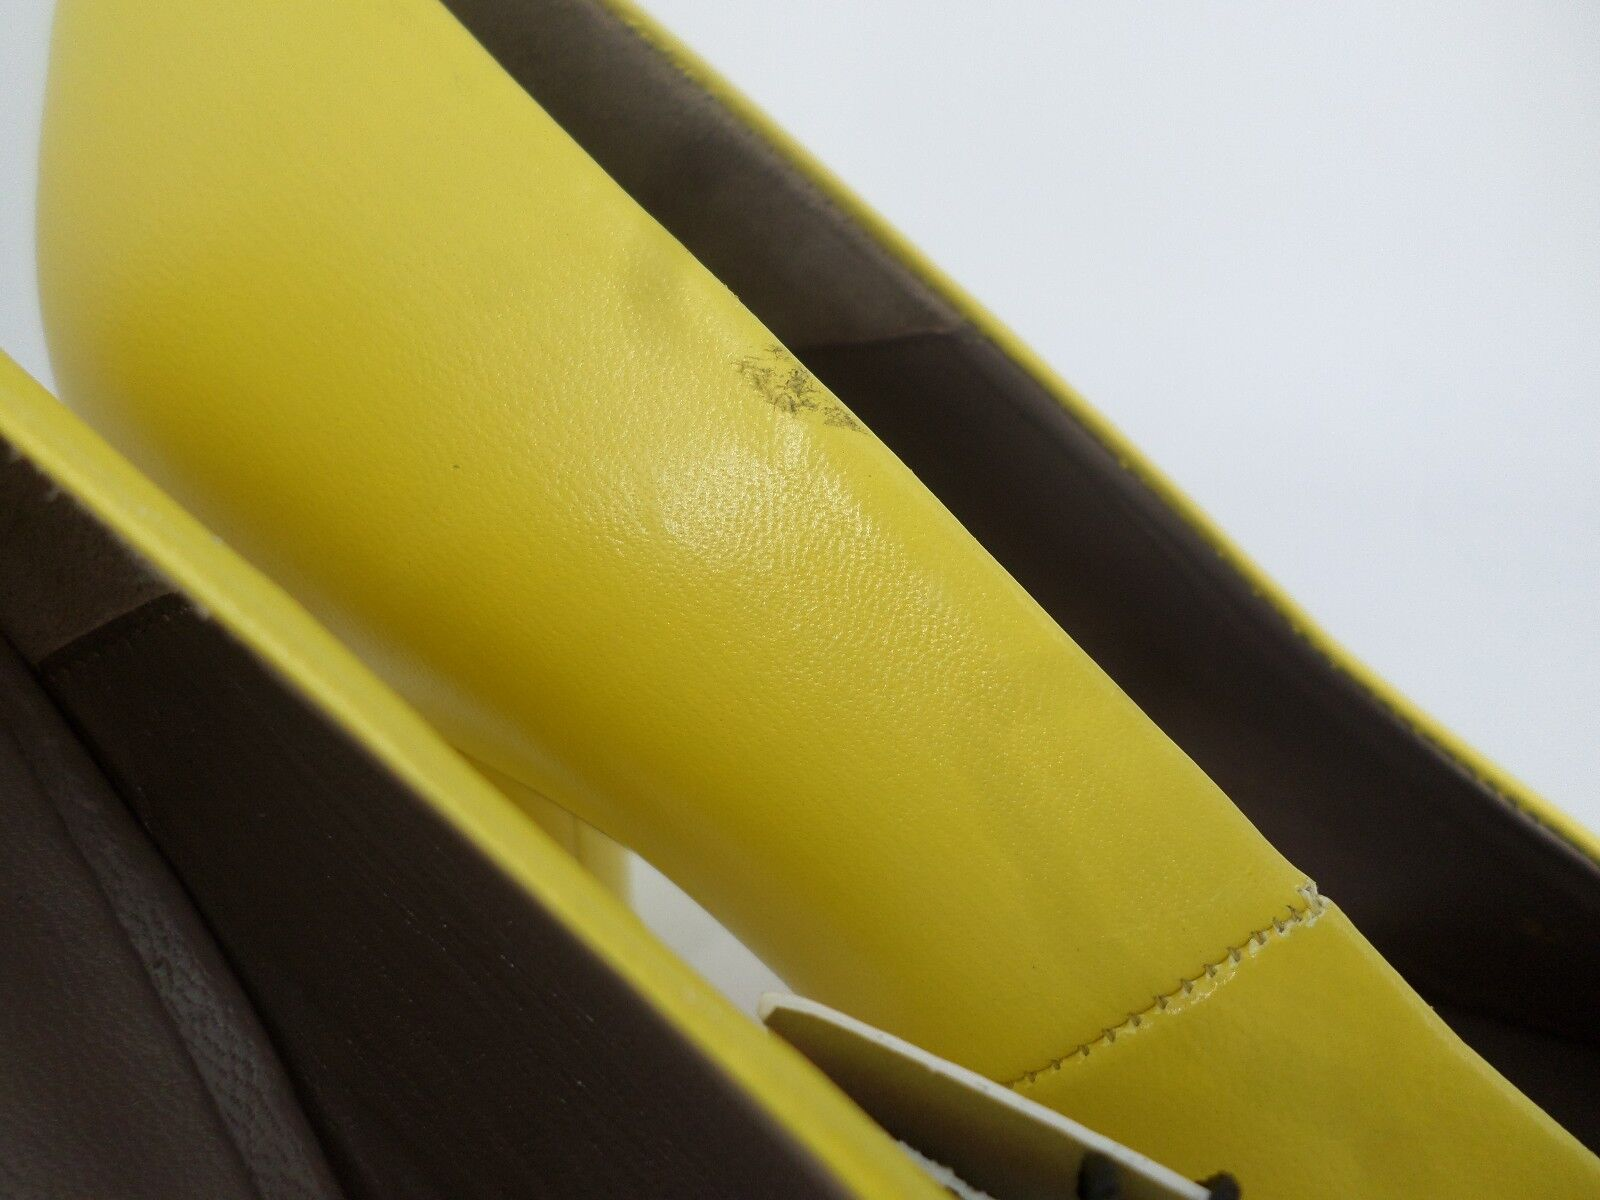 ZARA YELLOW LEATHER MID HEEL Schuhe UK 6 EU 39 LN086 ii 10